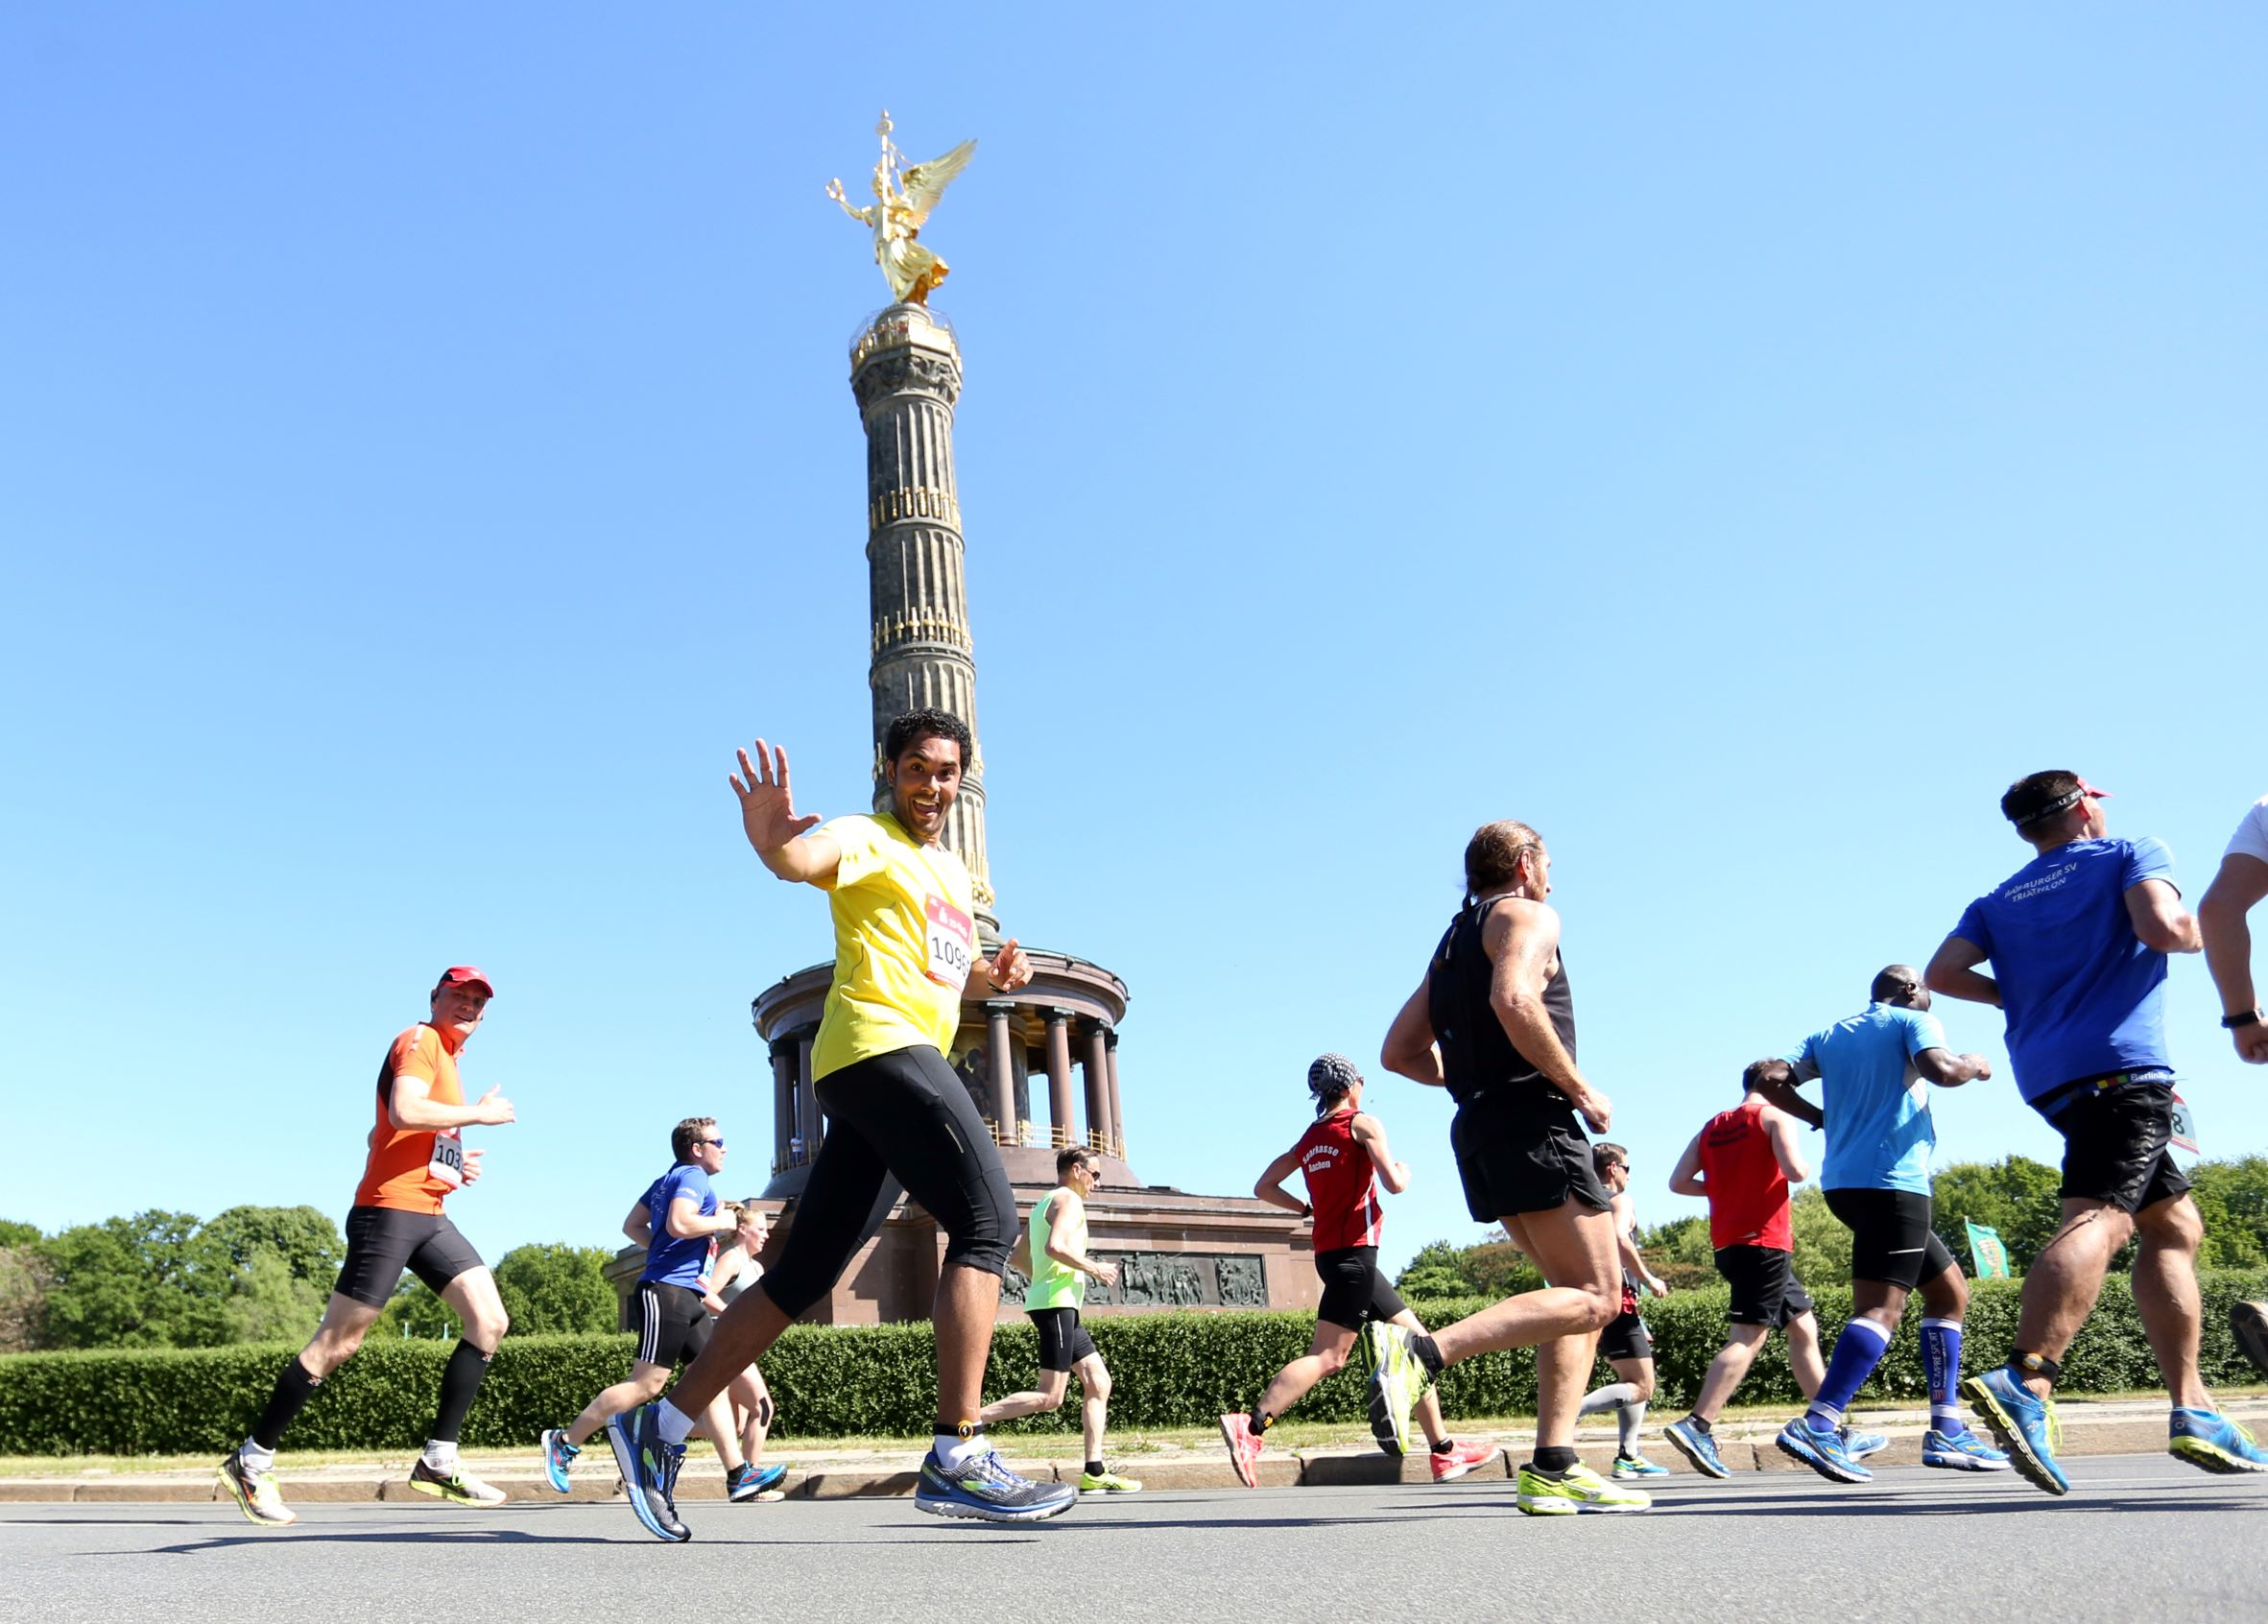 Registration for S 25 Berlin 2020 opened